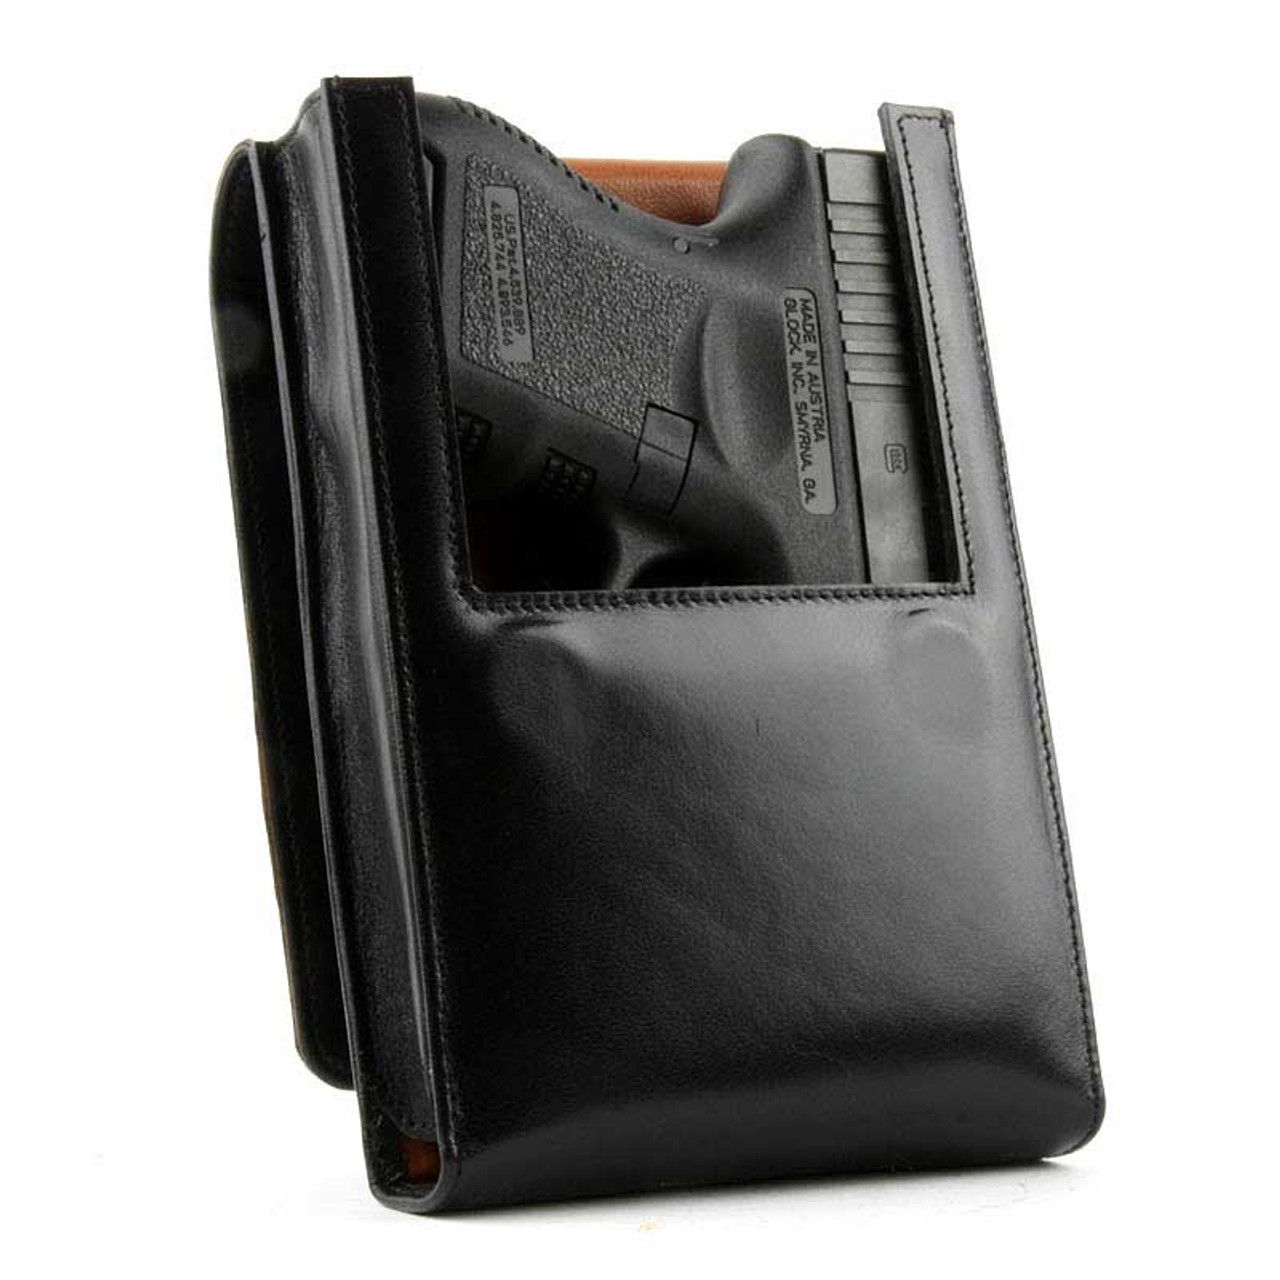 Glock 26 Concealed Carry Holster (Belt Loop)